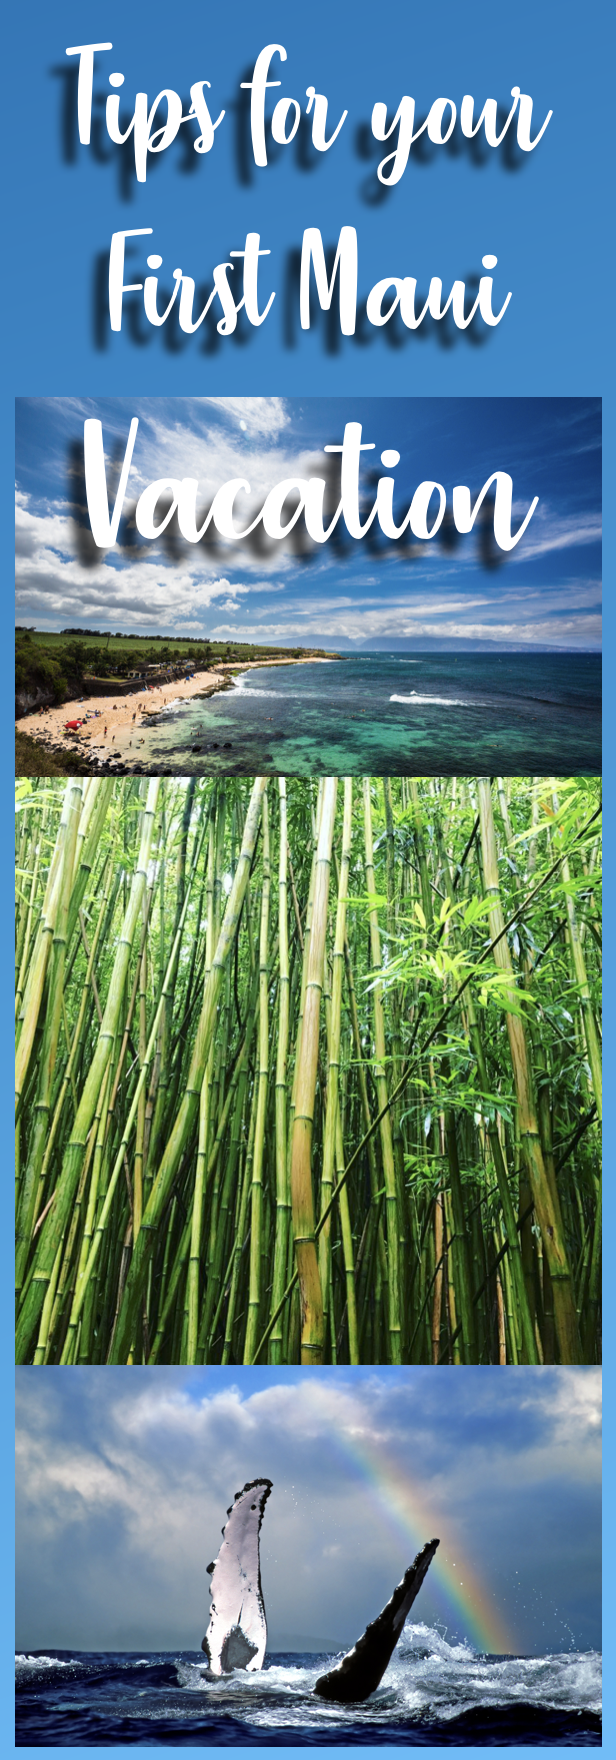 Tips for your First Maui Vacation! What to see, what to miss, and what to splurge on!